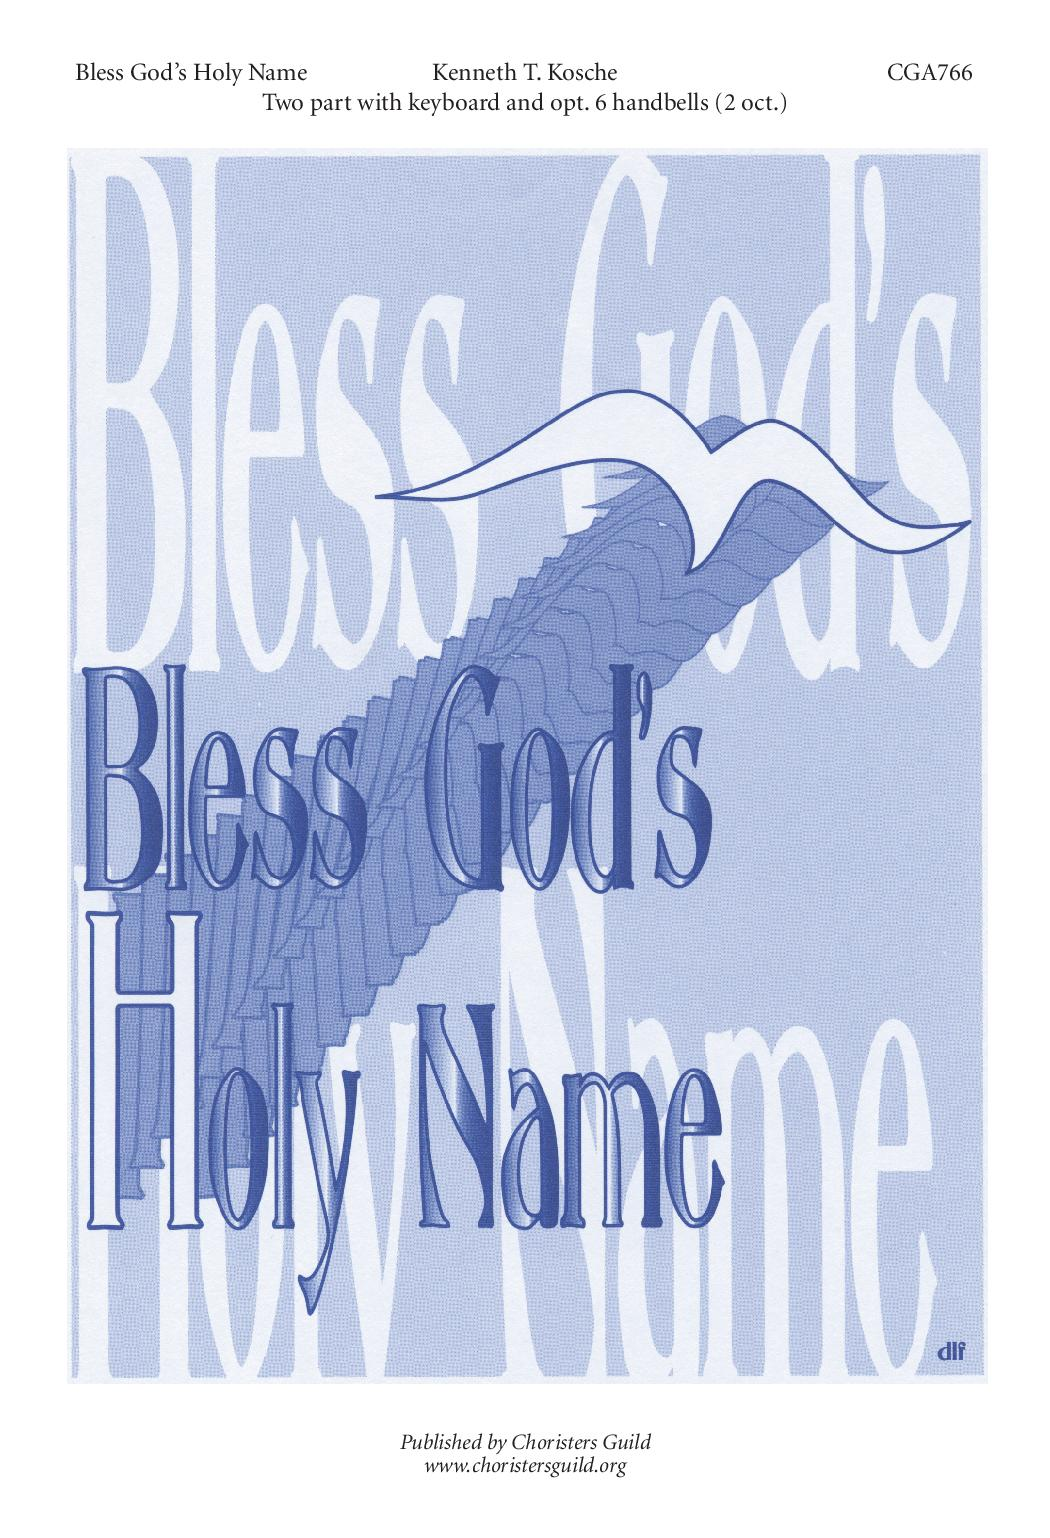 Bless God's Holy Name